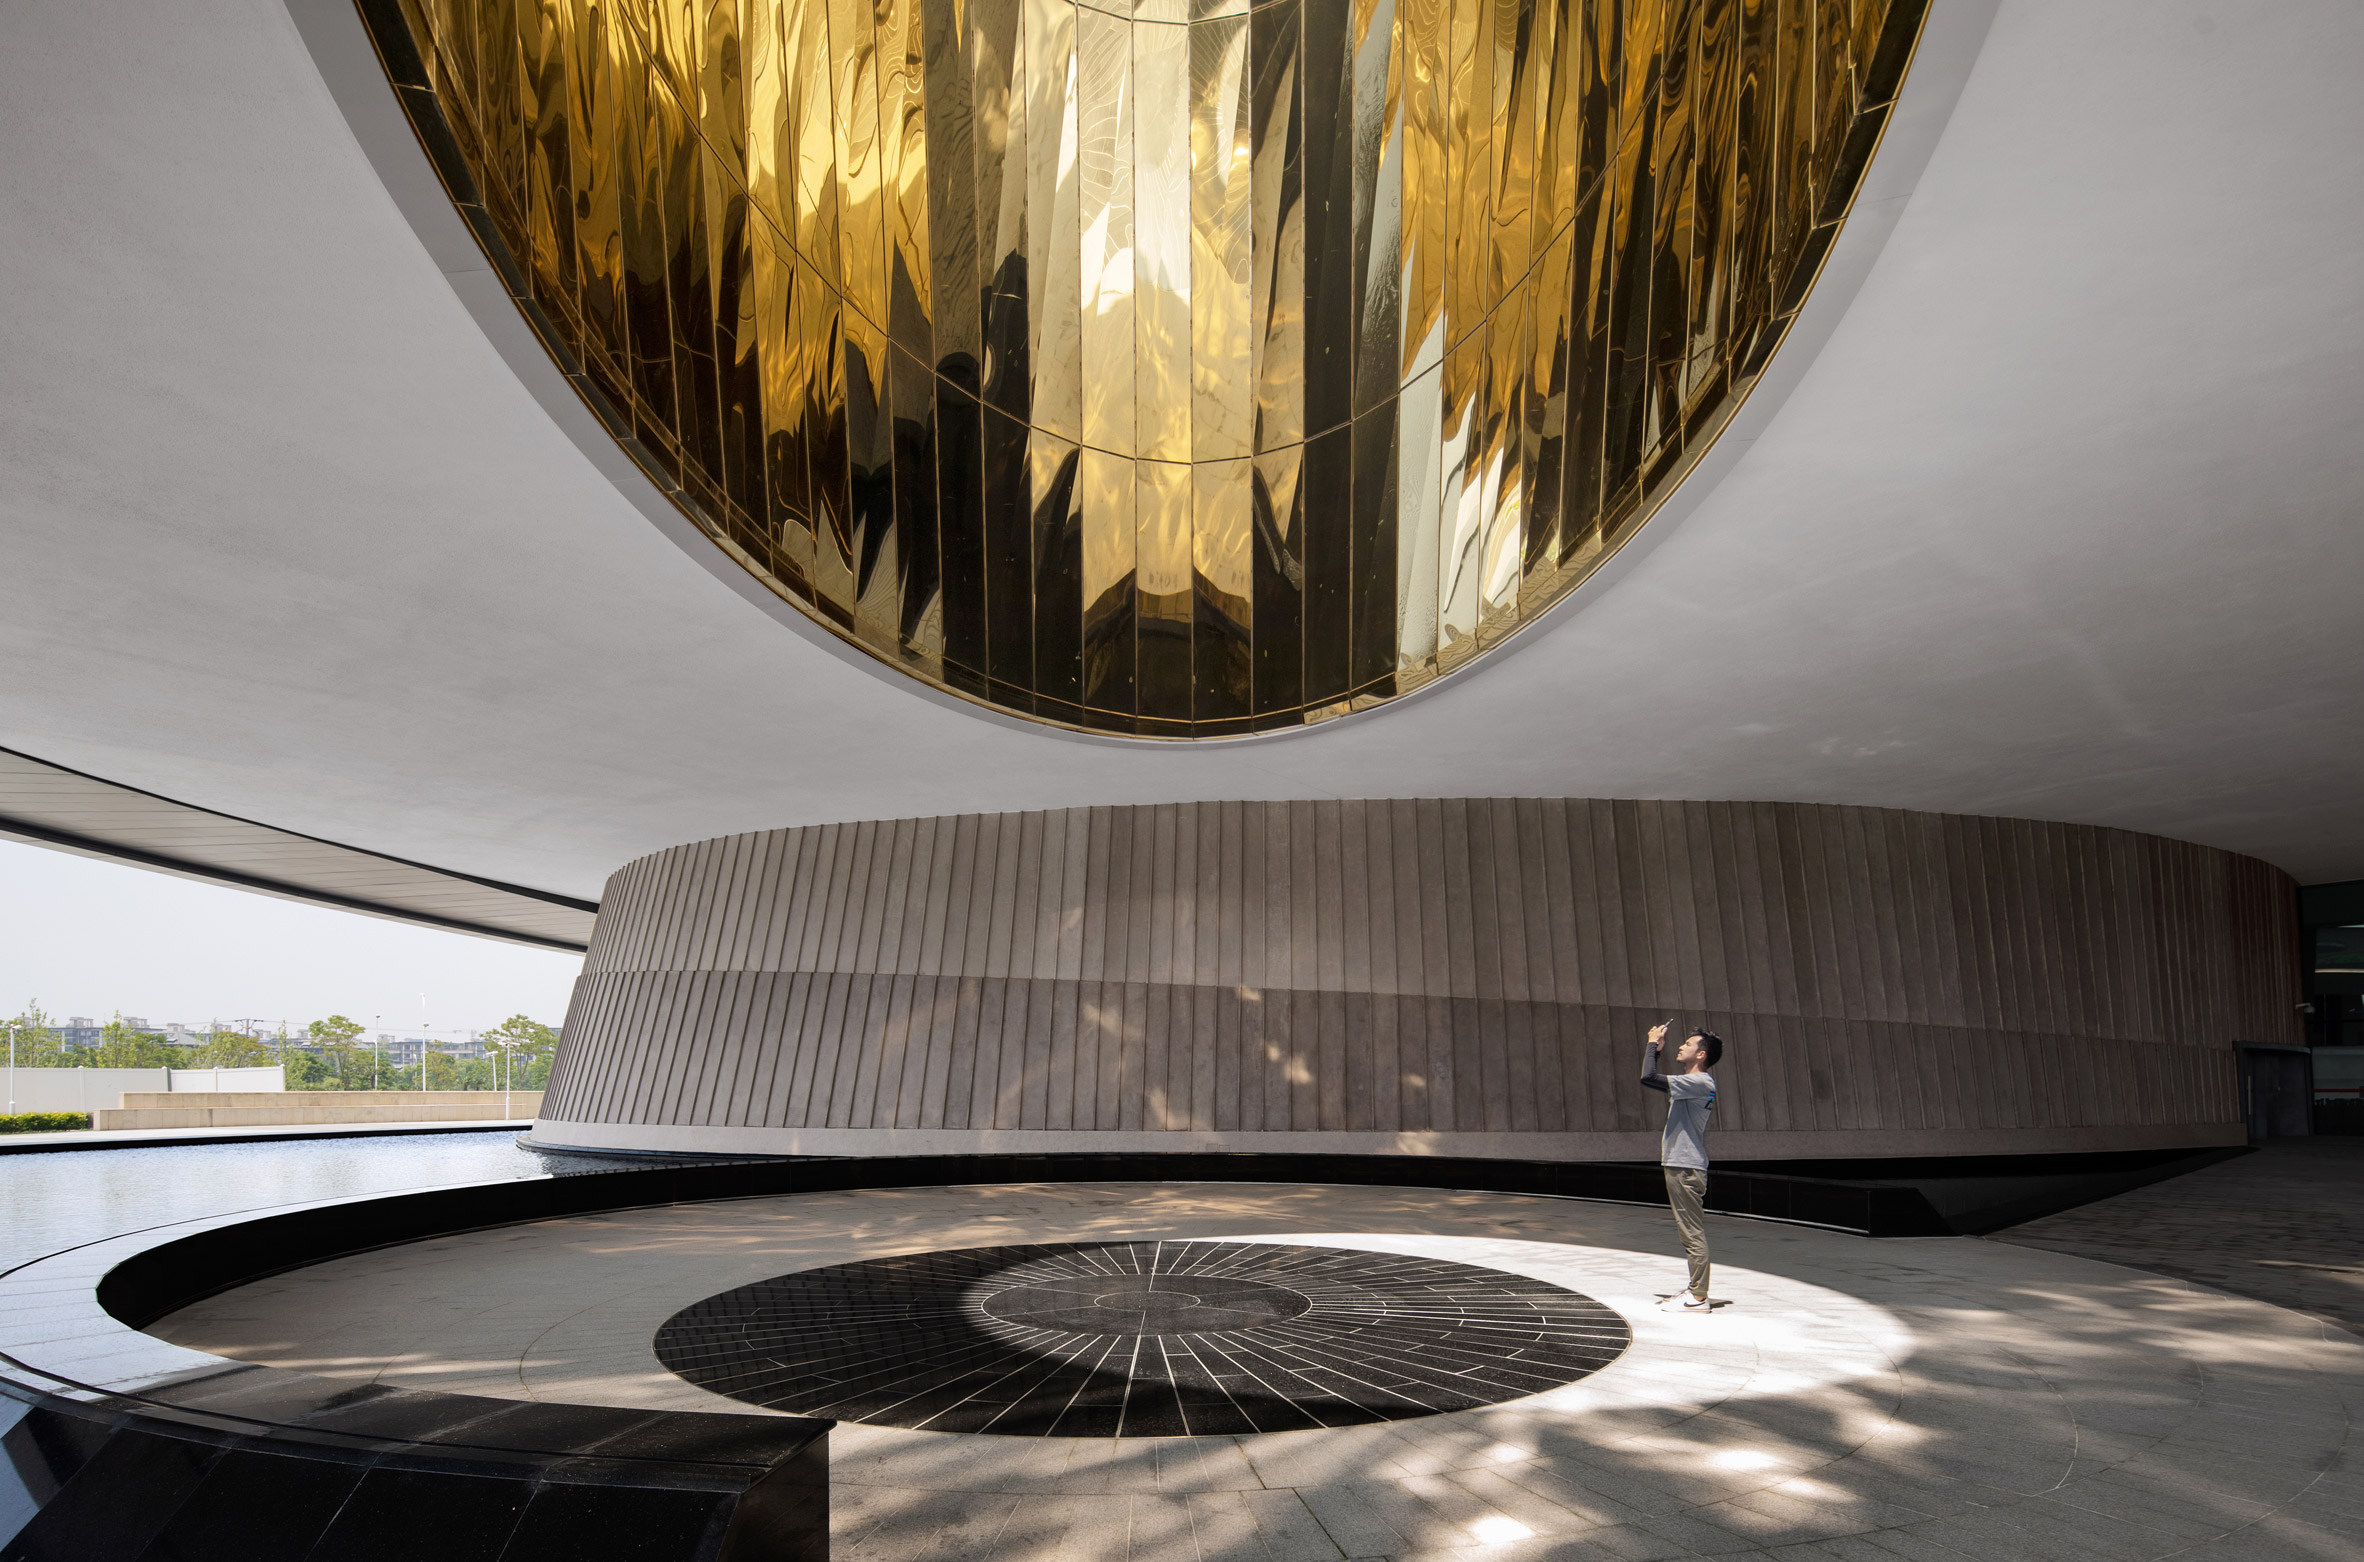 The Oculus at astronomy museum